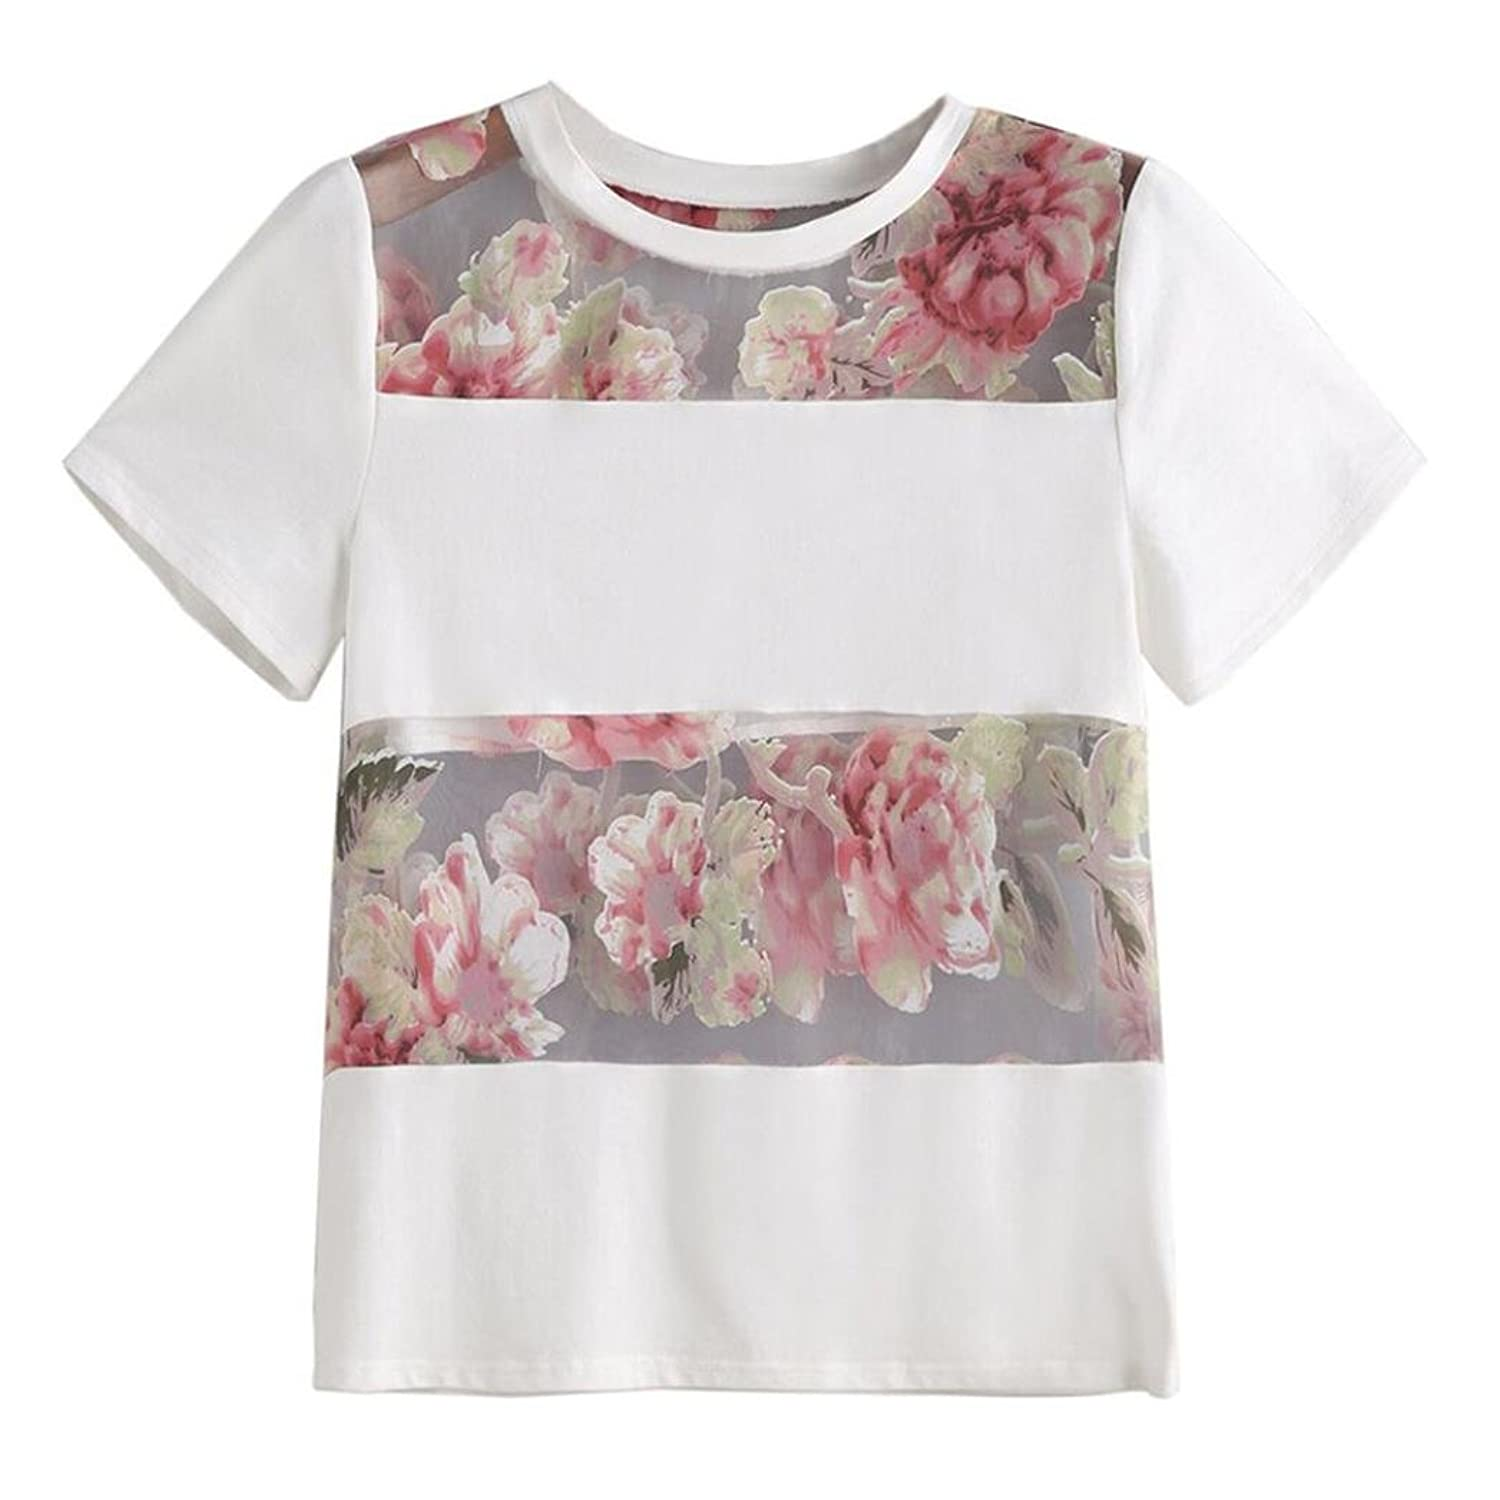 Amazon.com: DondPO Womens Short Sleeve T Shirts Sexy Women Blouse Basic Tees Tops Women Summer White Flower Printed T-Shirt Blouse Tops: Clothing